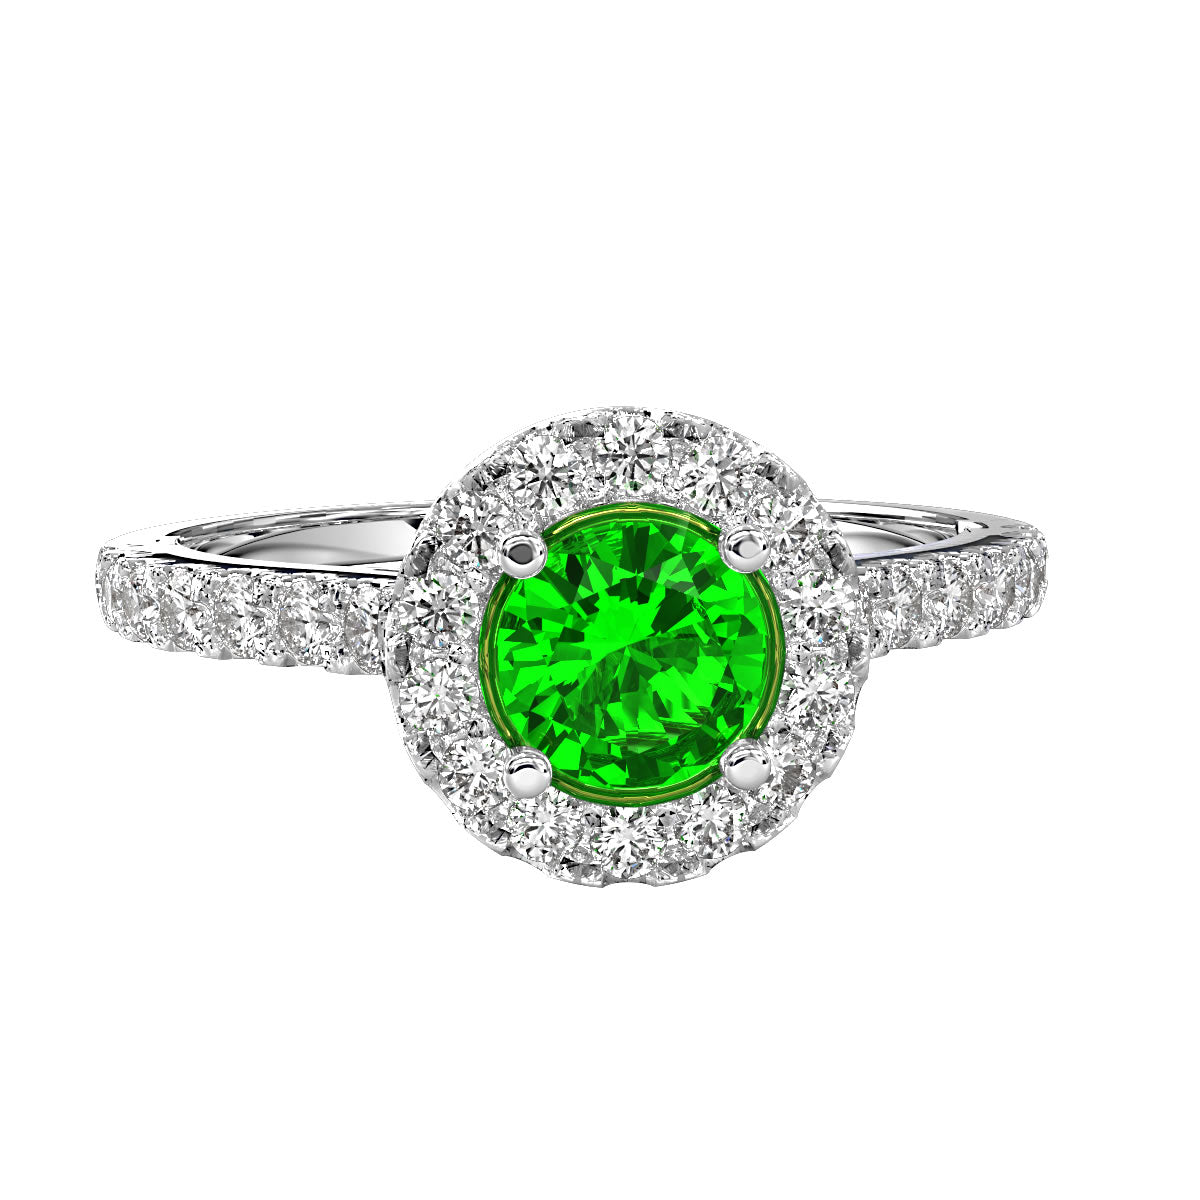 Gold Engagement ring with Emerald - 10GG97